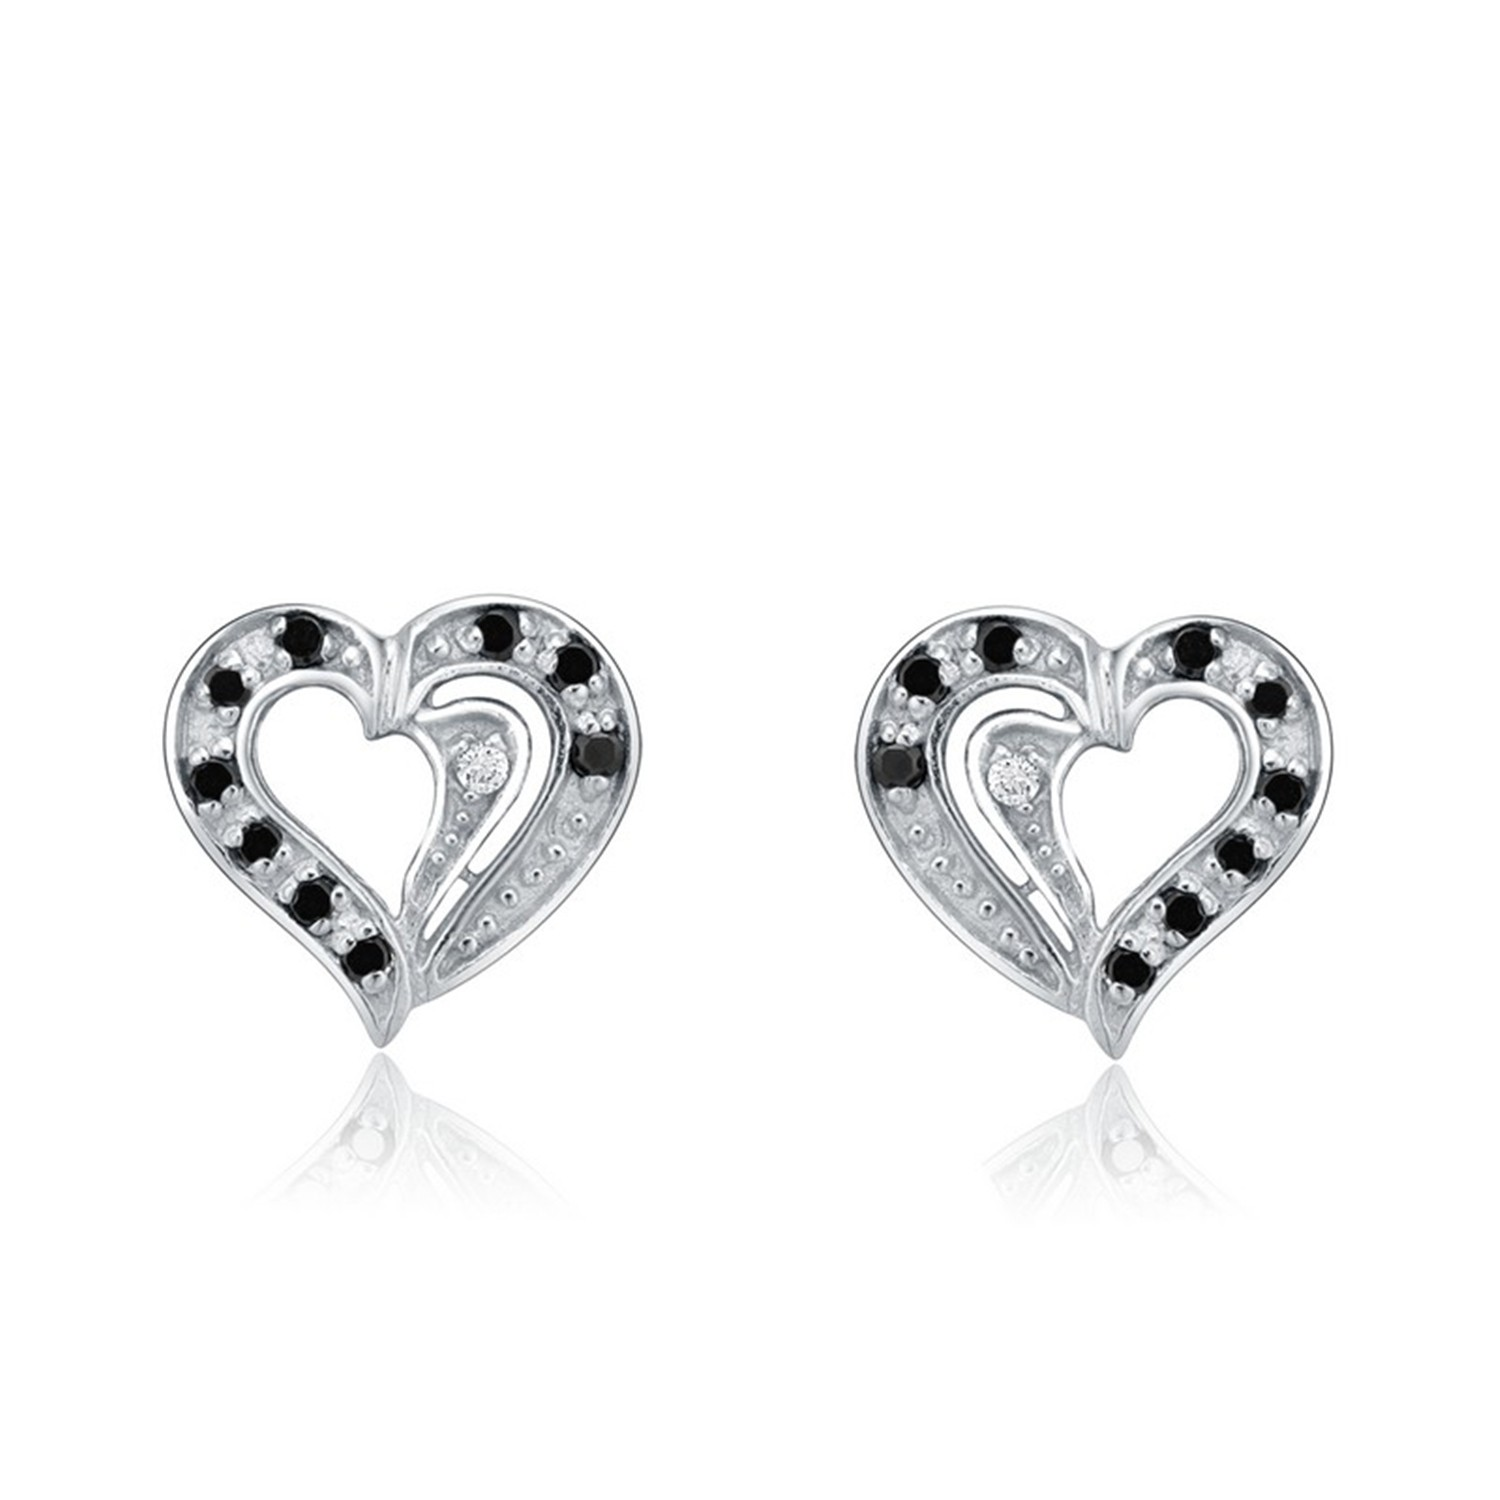 Fashionable Trendy 925 Sterling Silver Heart Shape White And Black CZ Stud Earrings